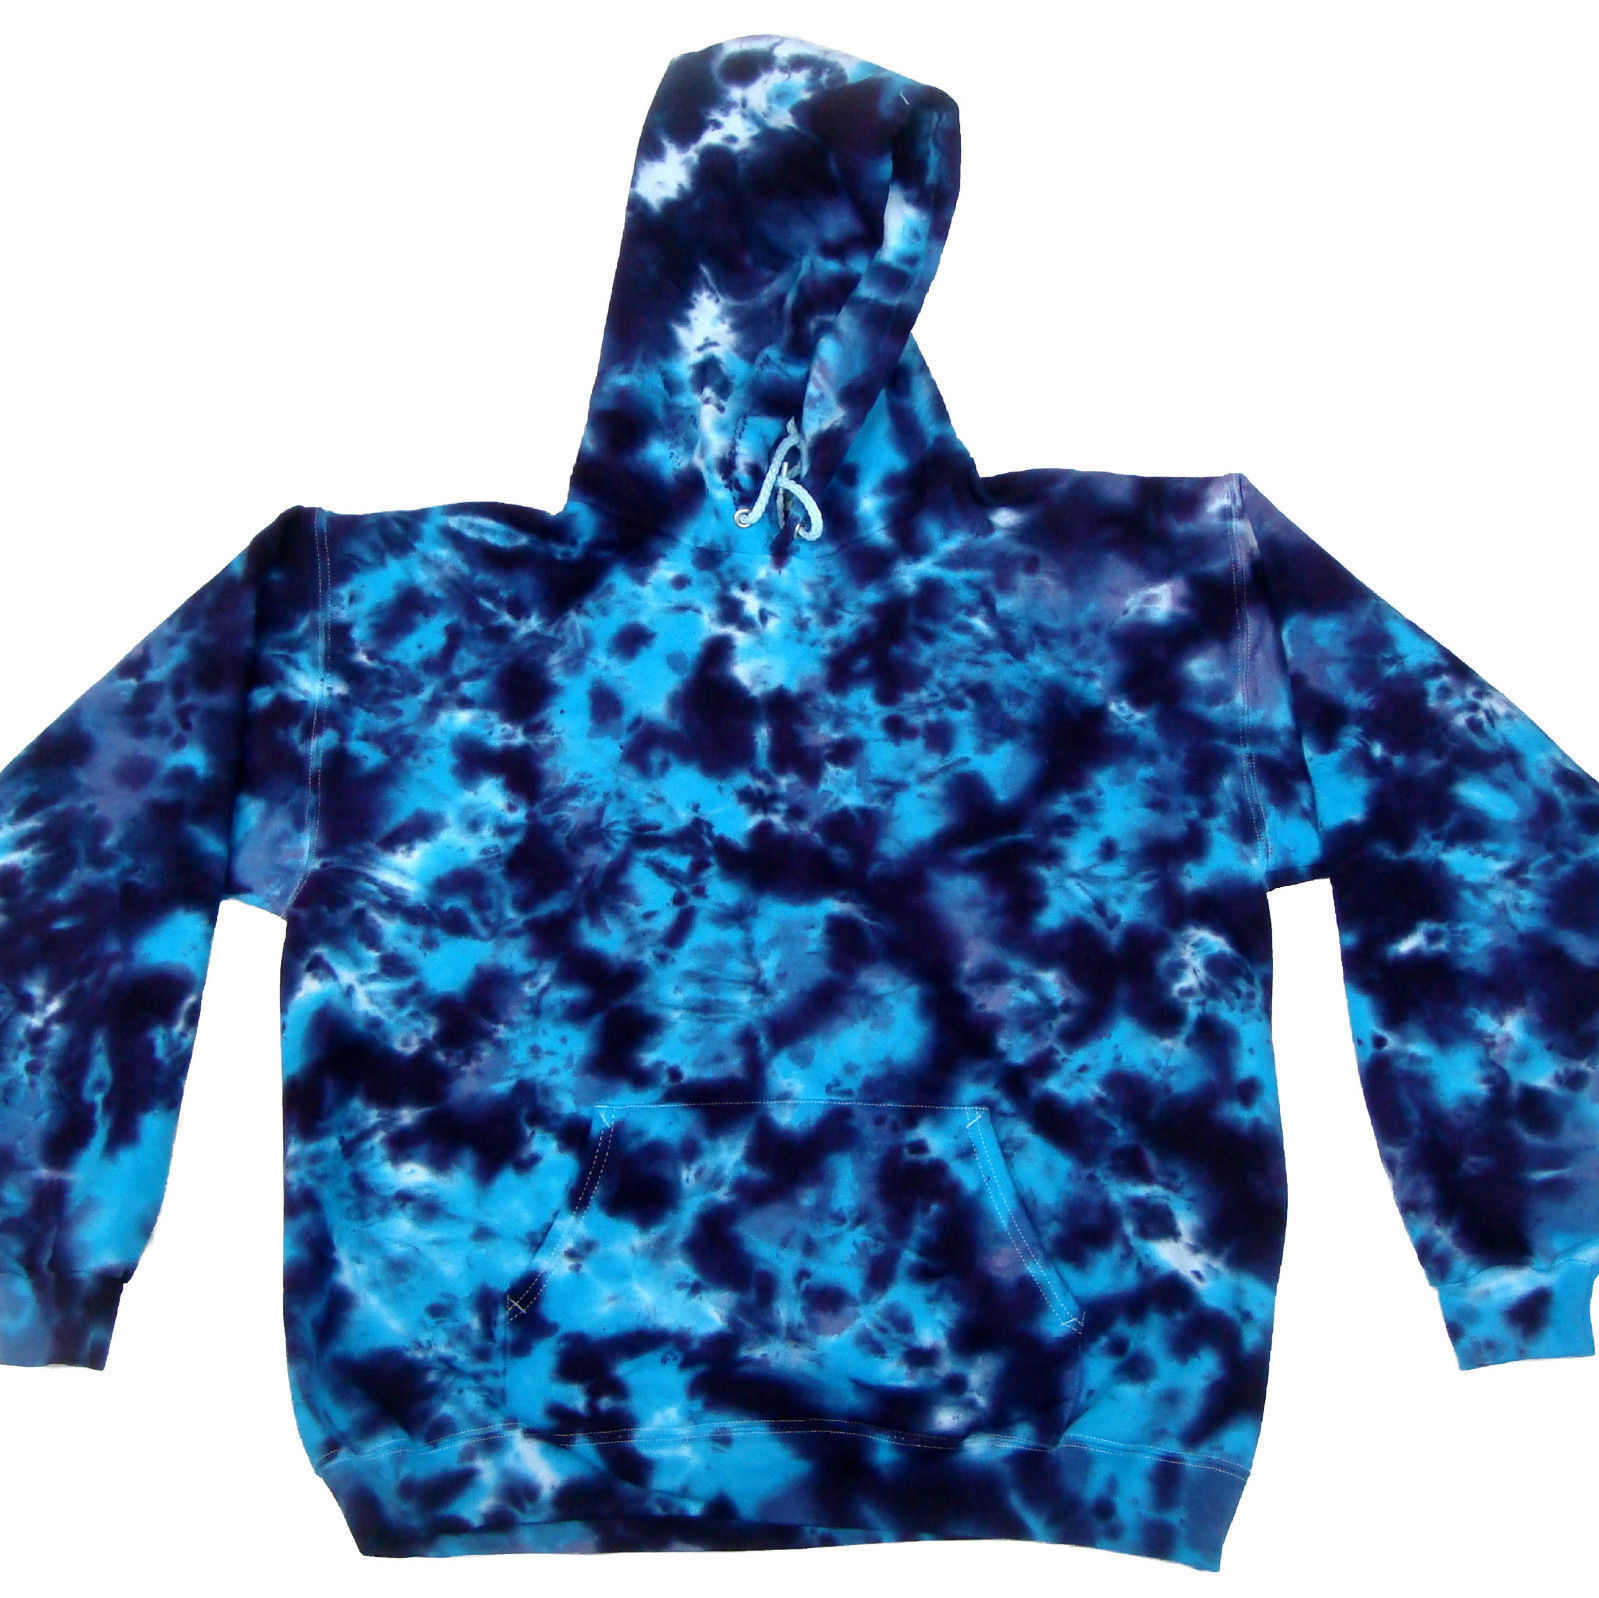 extra heavy weight mens tie dye hoodie ultimate hanes tye die hooded sweatshirt sweatshirts. Black Bedroom Furniture Sets. Home Design Ideas